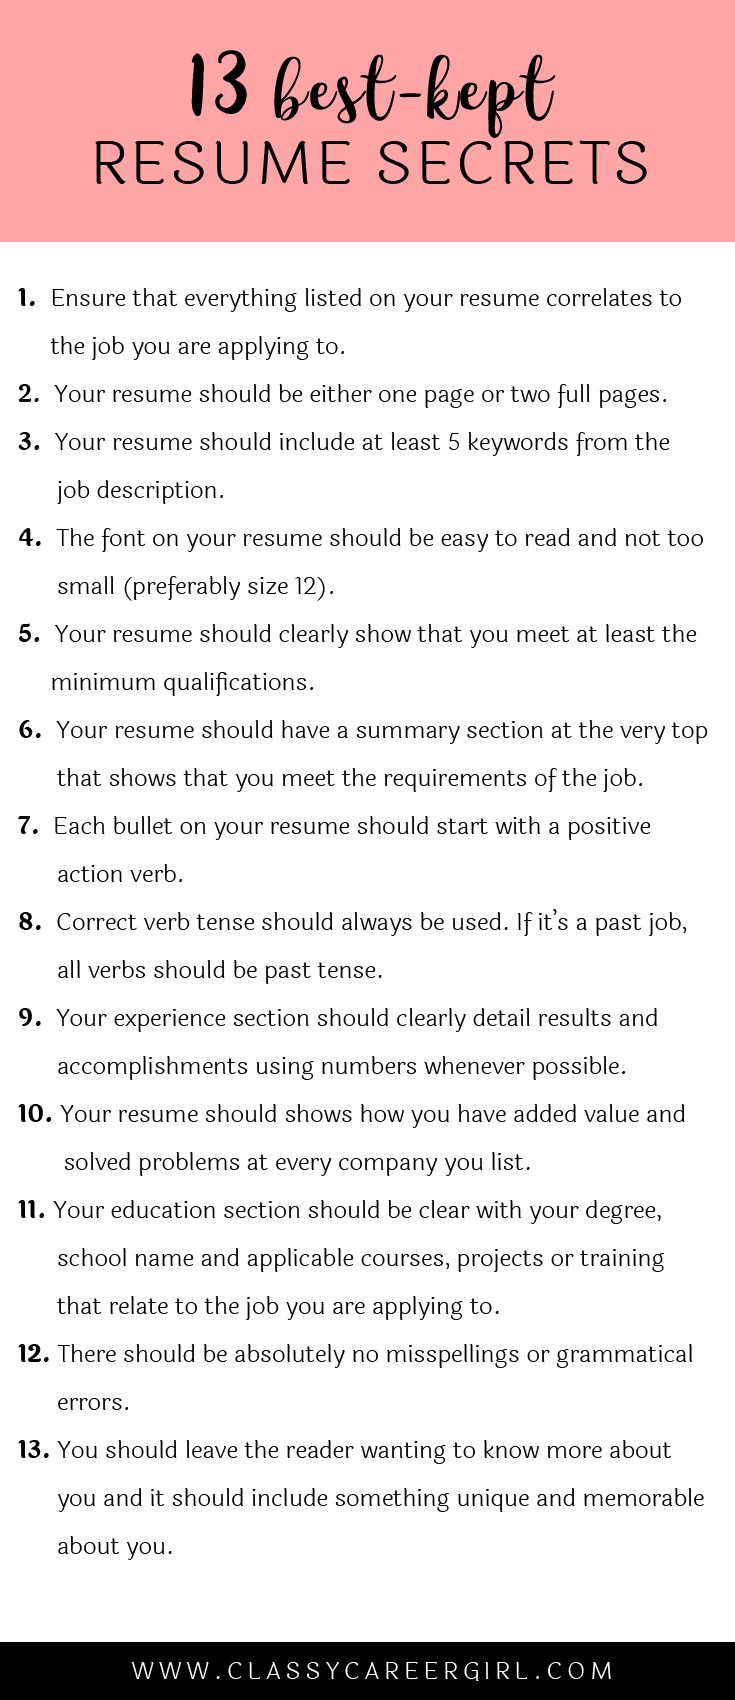 Picnictoimpeachus  Gorgeous  Ideas About Resume On Pinterest  Cv Format Resume Cv And  With Fascinating Some Hiring Managers Will Toss Your Resume Out If You Dont Know These  With Charming Copywriting Resume Also How To Make A Resume College Student In Addition Nursing Resume Objective Examples And Er Tech Resume As Well As Hair Stylist Resume Example Additionally Wall Street Resume From Pinterestcom With Picnictoimpeachus  Fascinating  Ideas About Resume On Pinterest  Cv Format Resume Cv And  With Charming Some Hiring Managers Will Toss Your Resume Out If You Dont Know These  And Gorgeous Copywriting Resume Also How To Make A Resume College Student In Addition Nursing Resume Objective Examples From Pinterestcom